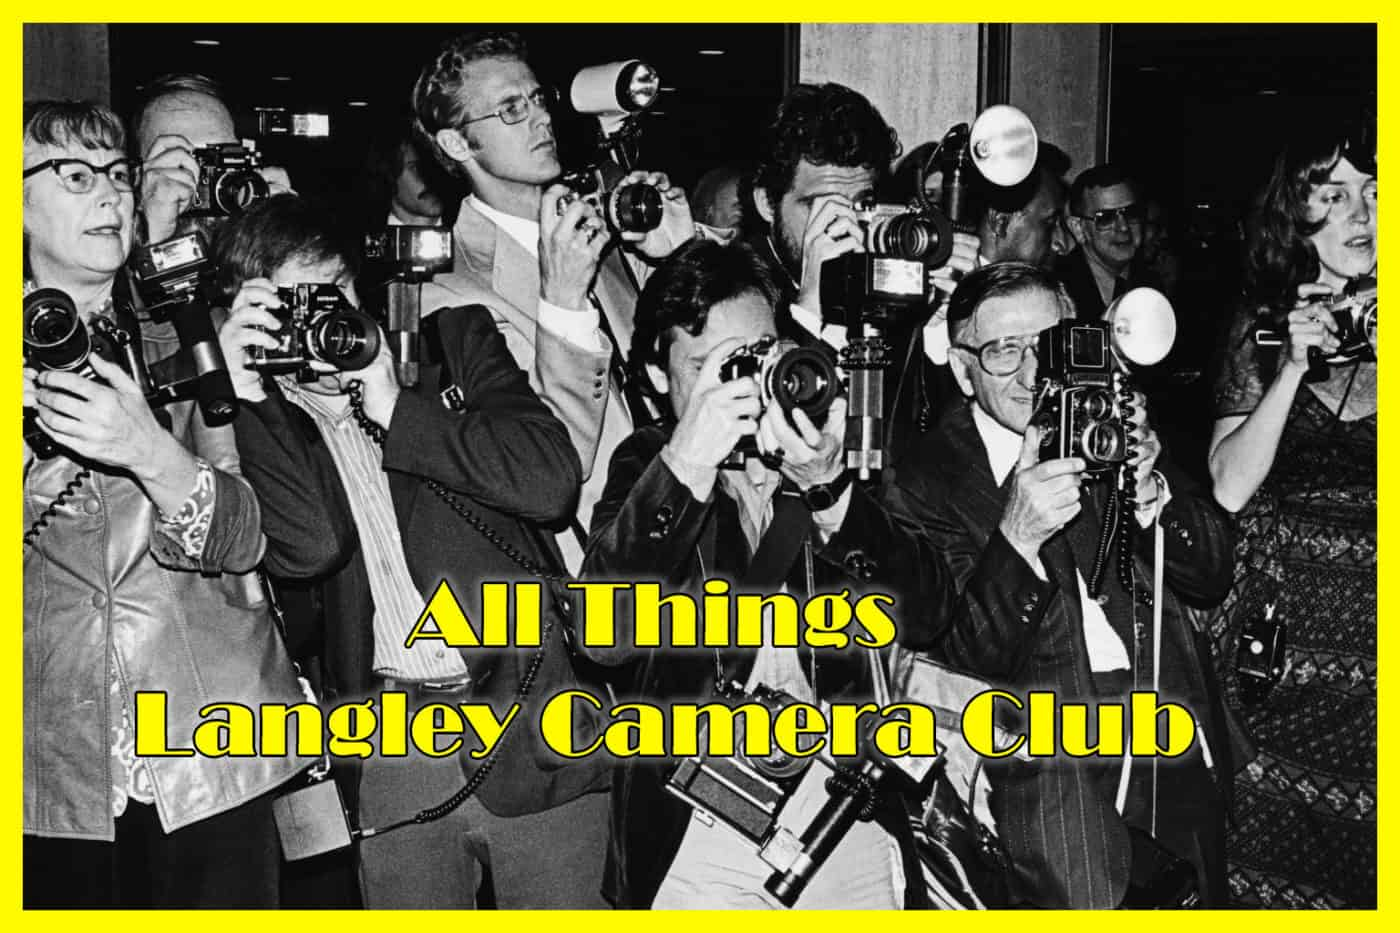 Meeting Sept. 18 All Things Langley Camera Club